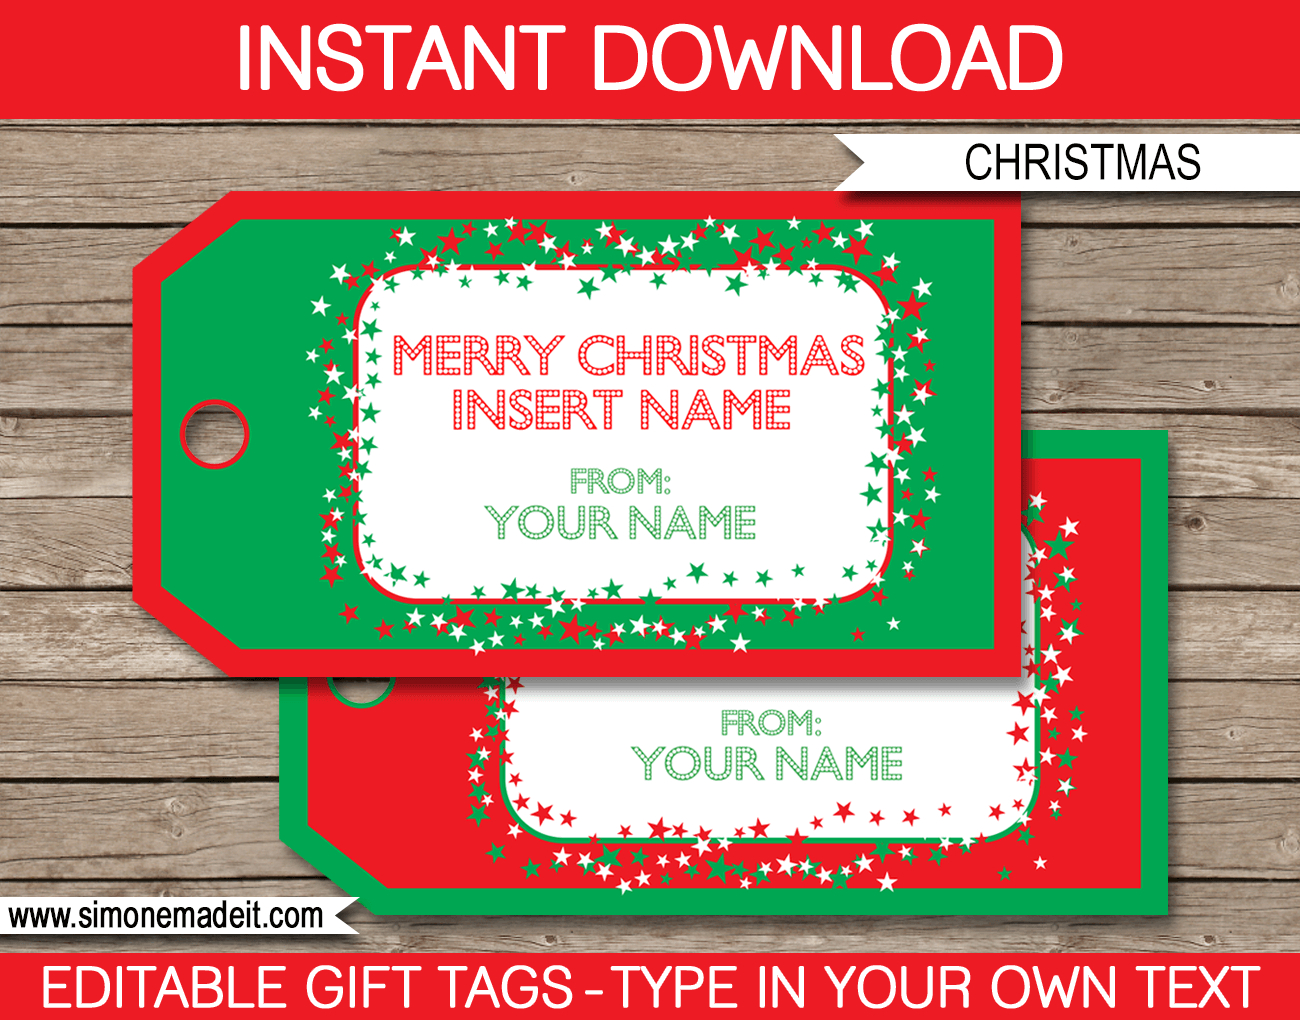 Christmas Gift Tag Template | Printable Christmas Gift Tags - Free Printable Editable Christmas Gift Tags